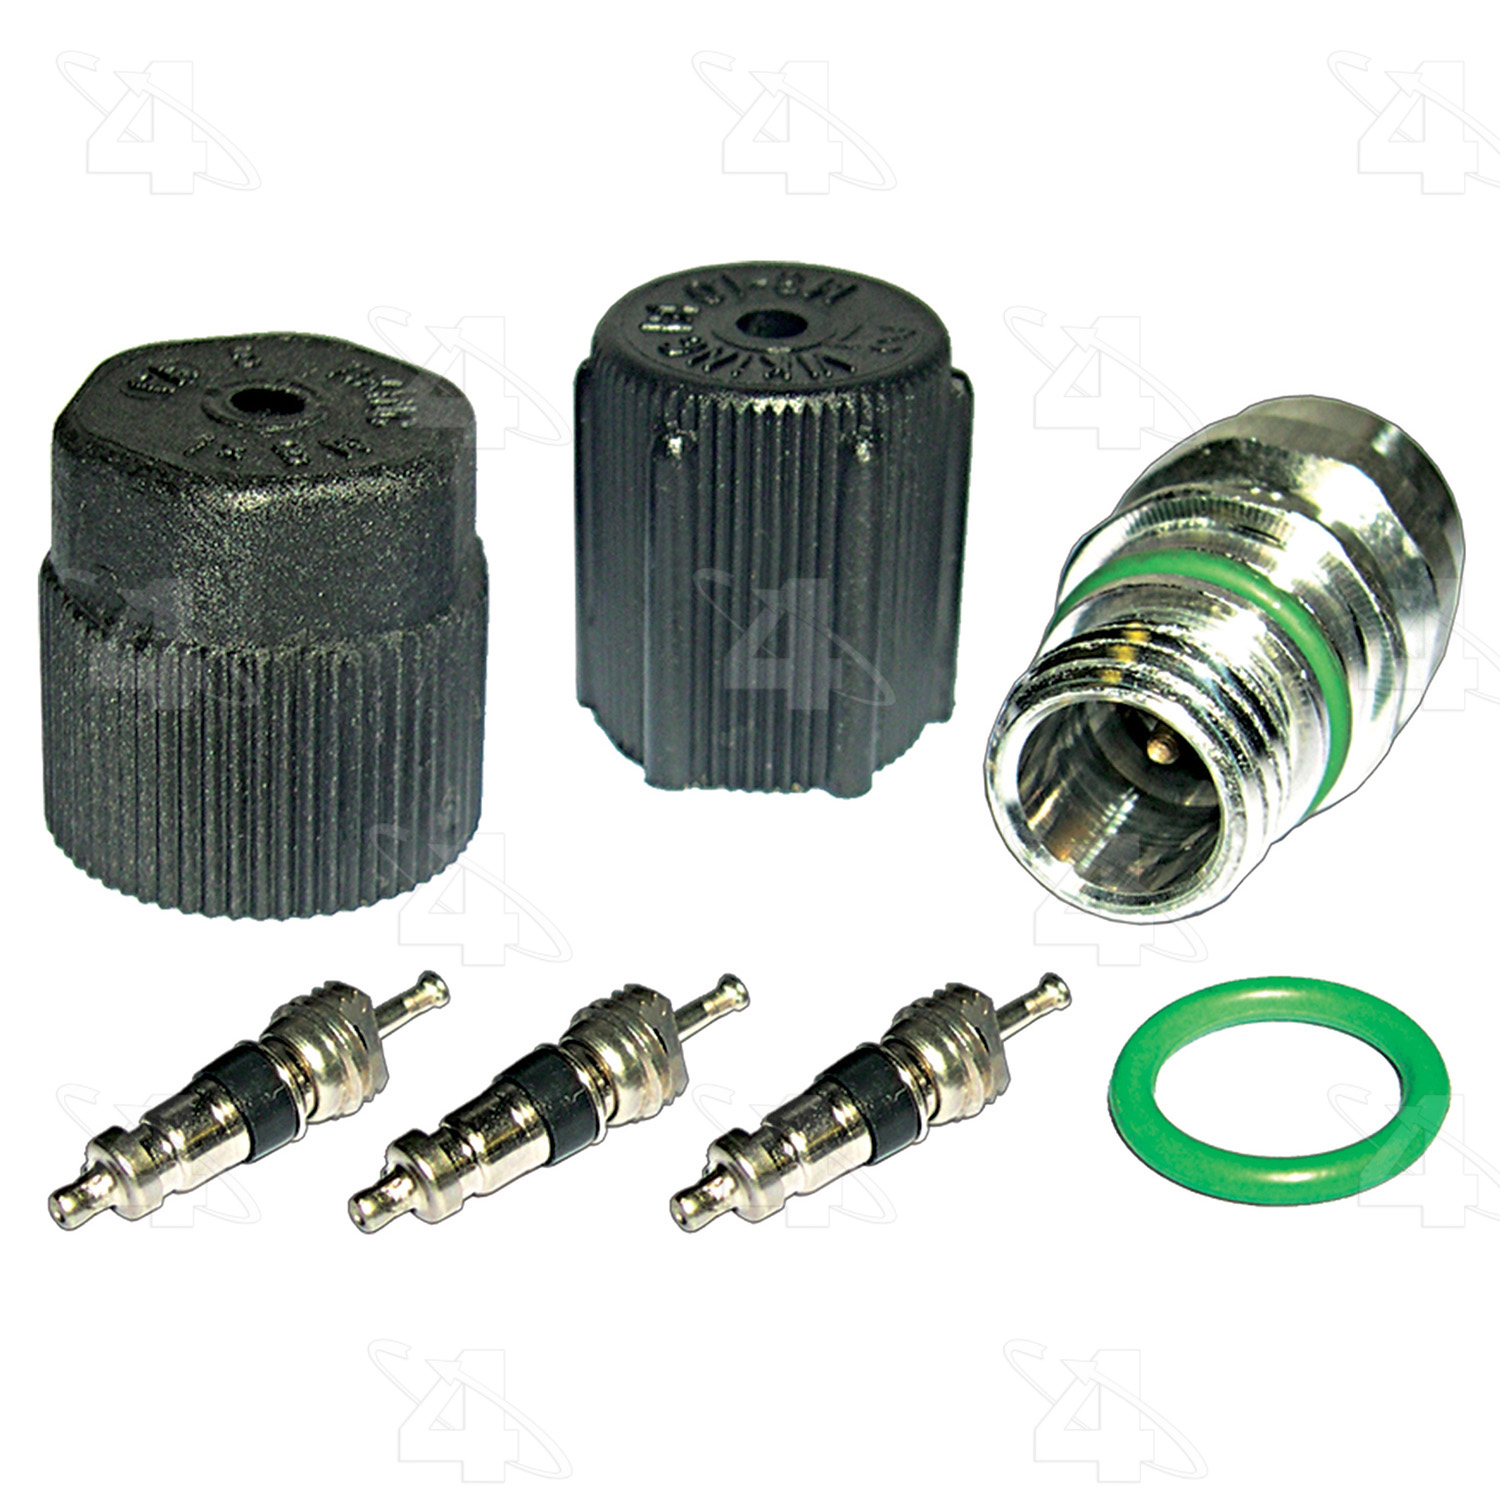 A/C System Valve Core and Cap Kit